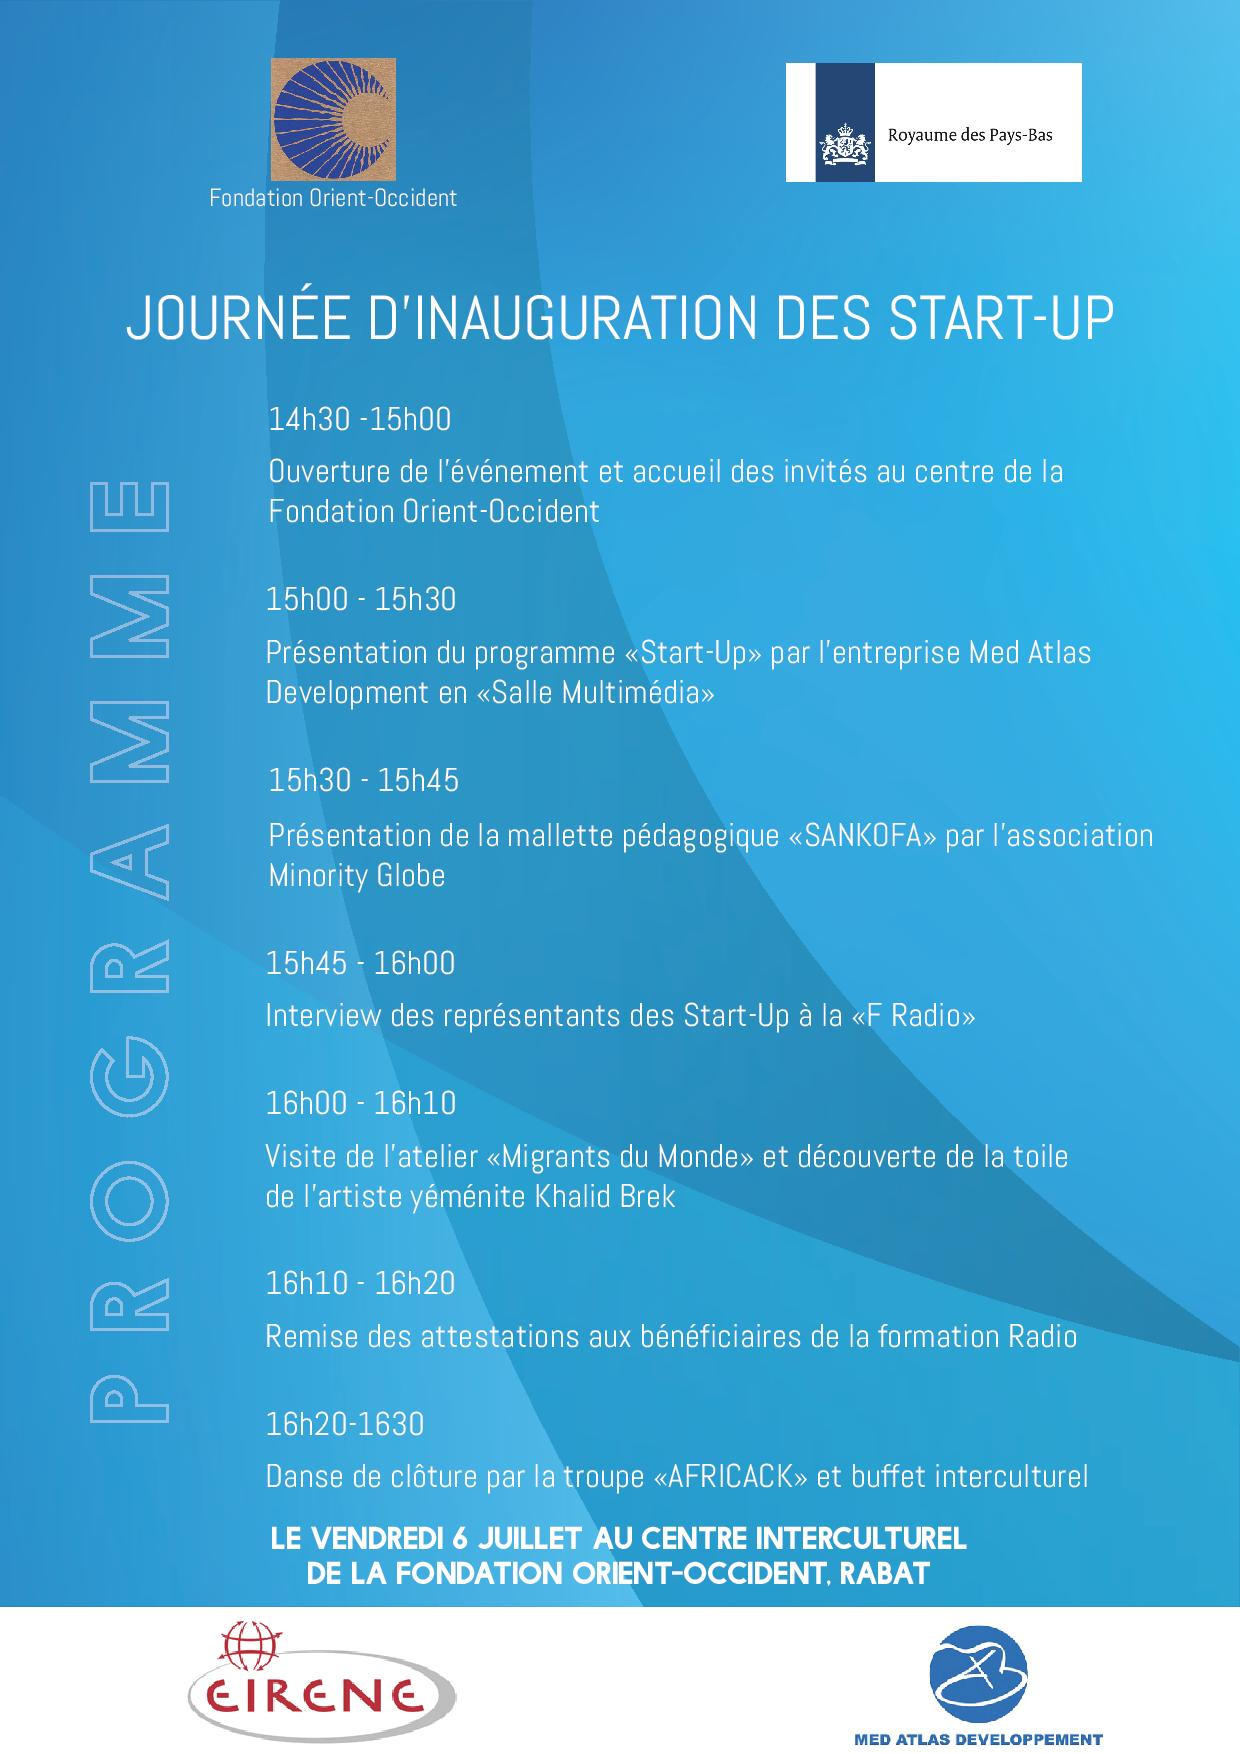 July 6, 2018 – Start-ups Inauguration Day – the program